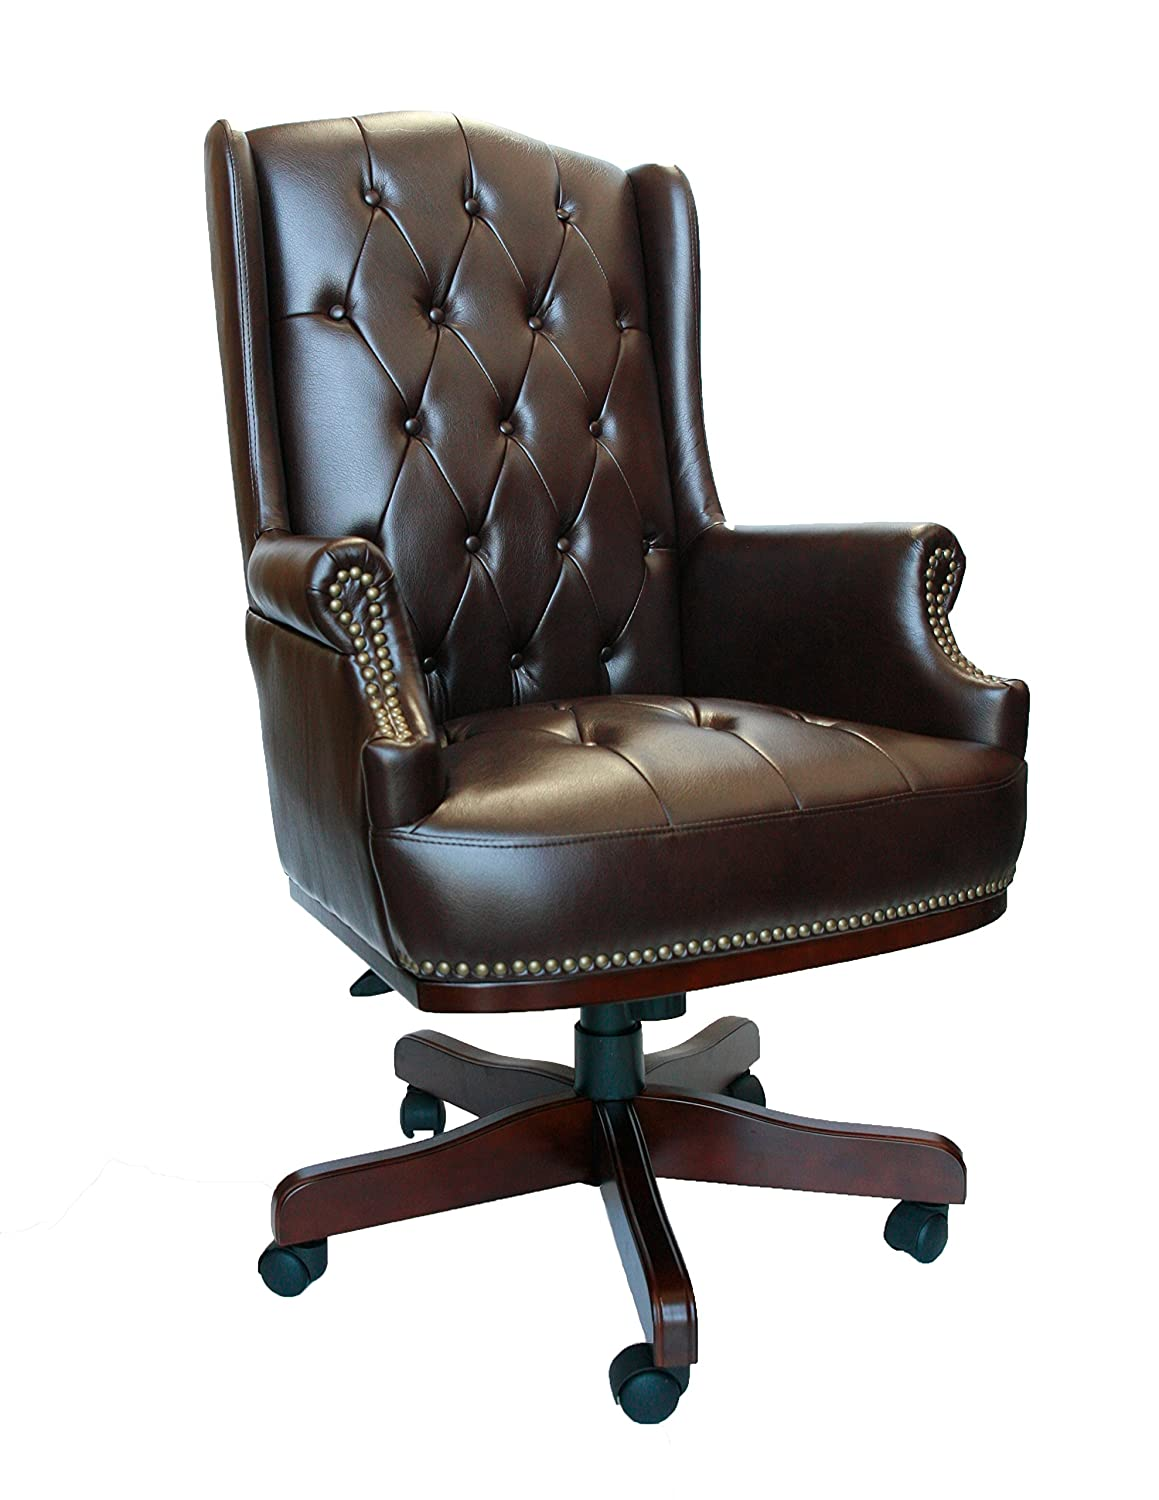 LUXURY MANAGERS DIRECTORS CHESTERFIELD ANTIQUE CAPTAIN STYLE LEATHER OFFICE  DESK CHAIR FURNITURE (brown): Amazon.co.uk: Office Products